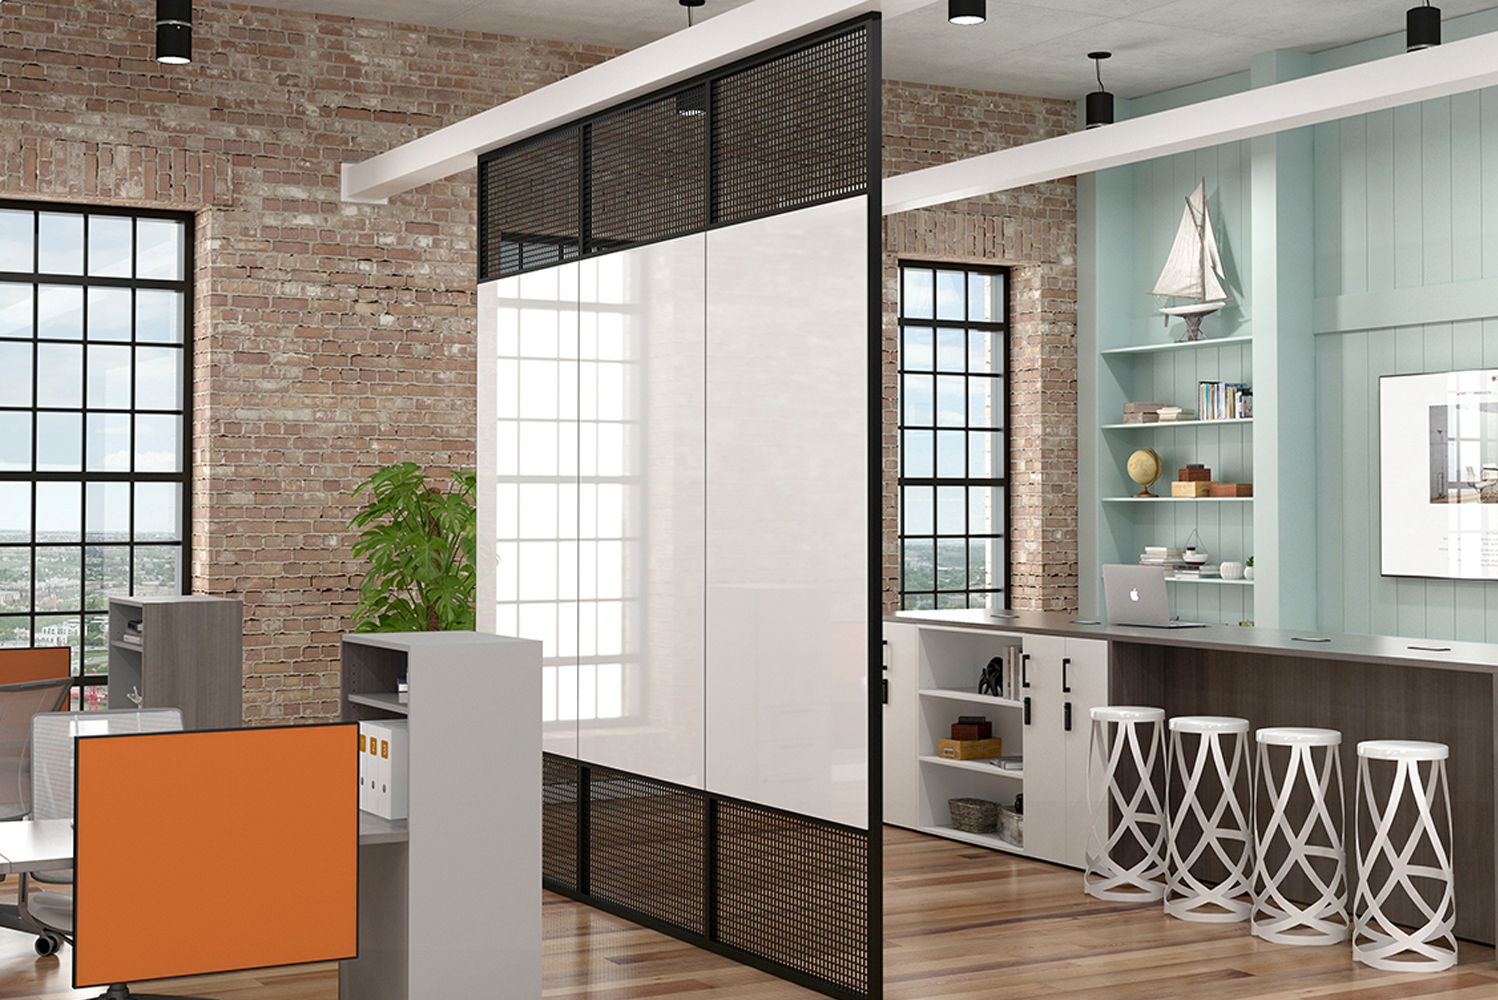 Sliding panels in various materials can be incorporated in some configurations to add even more functionality.